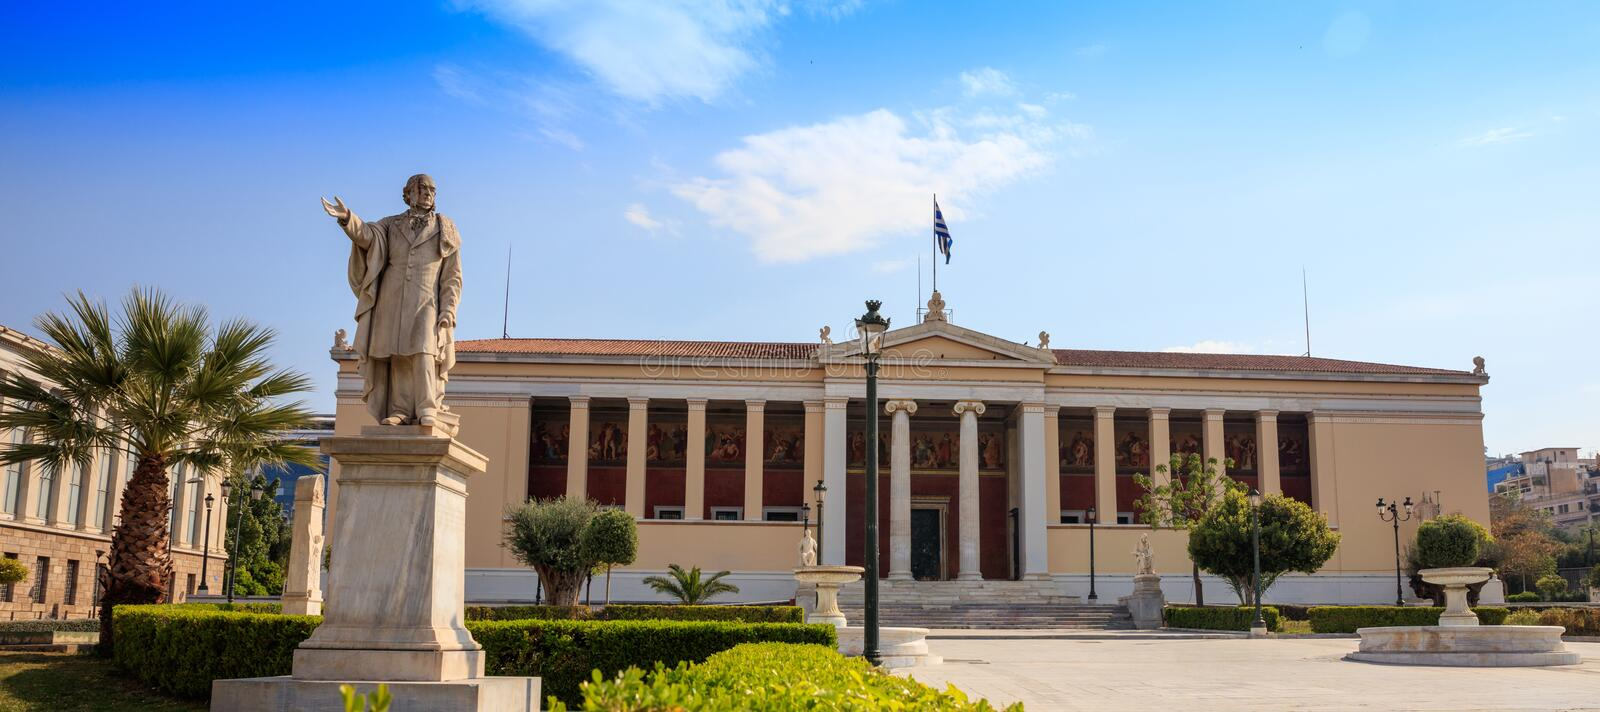 Athens, Greece - National and Kapodistrian University royalty free stock photography